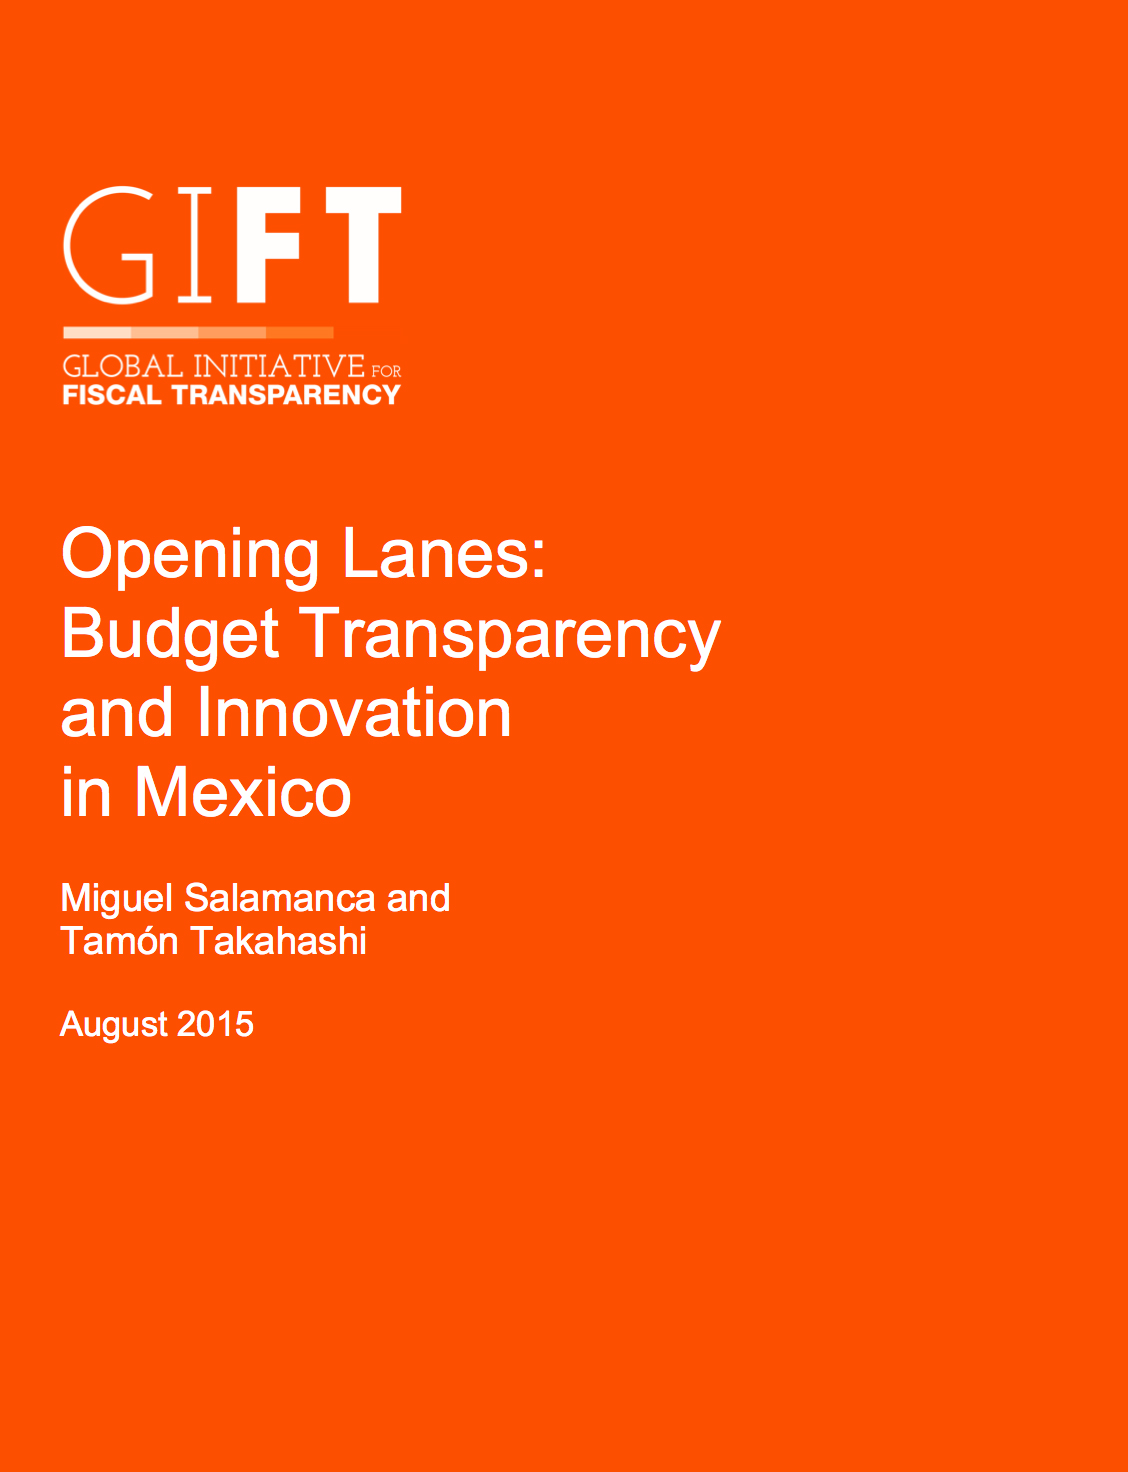 Opening Lanes: Budget Transparency and Innovation in Mexico